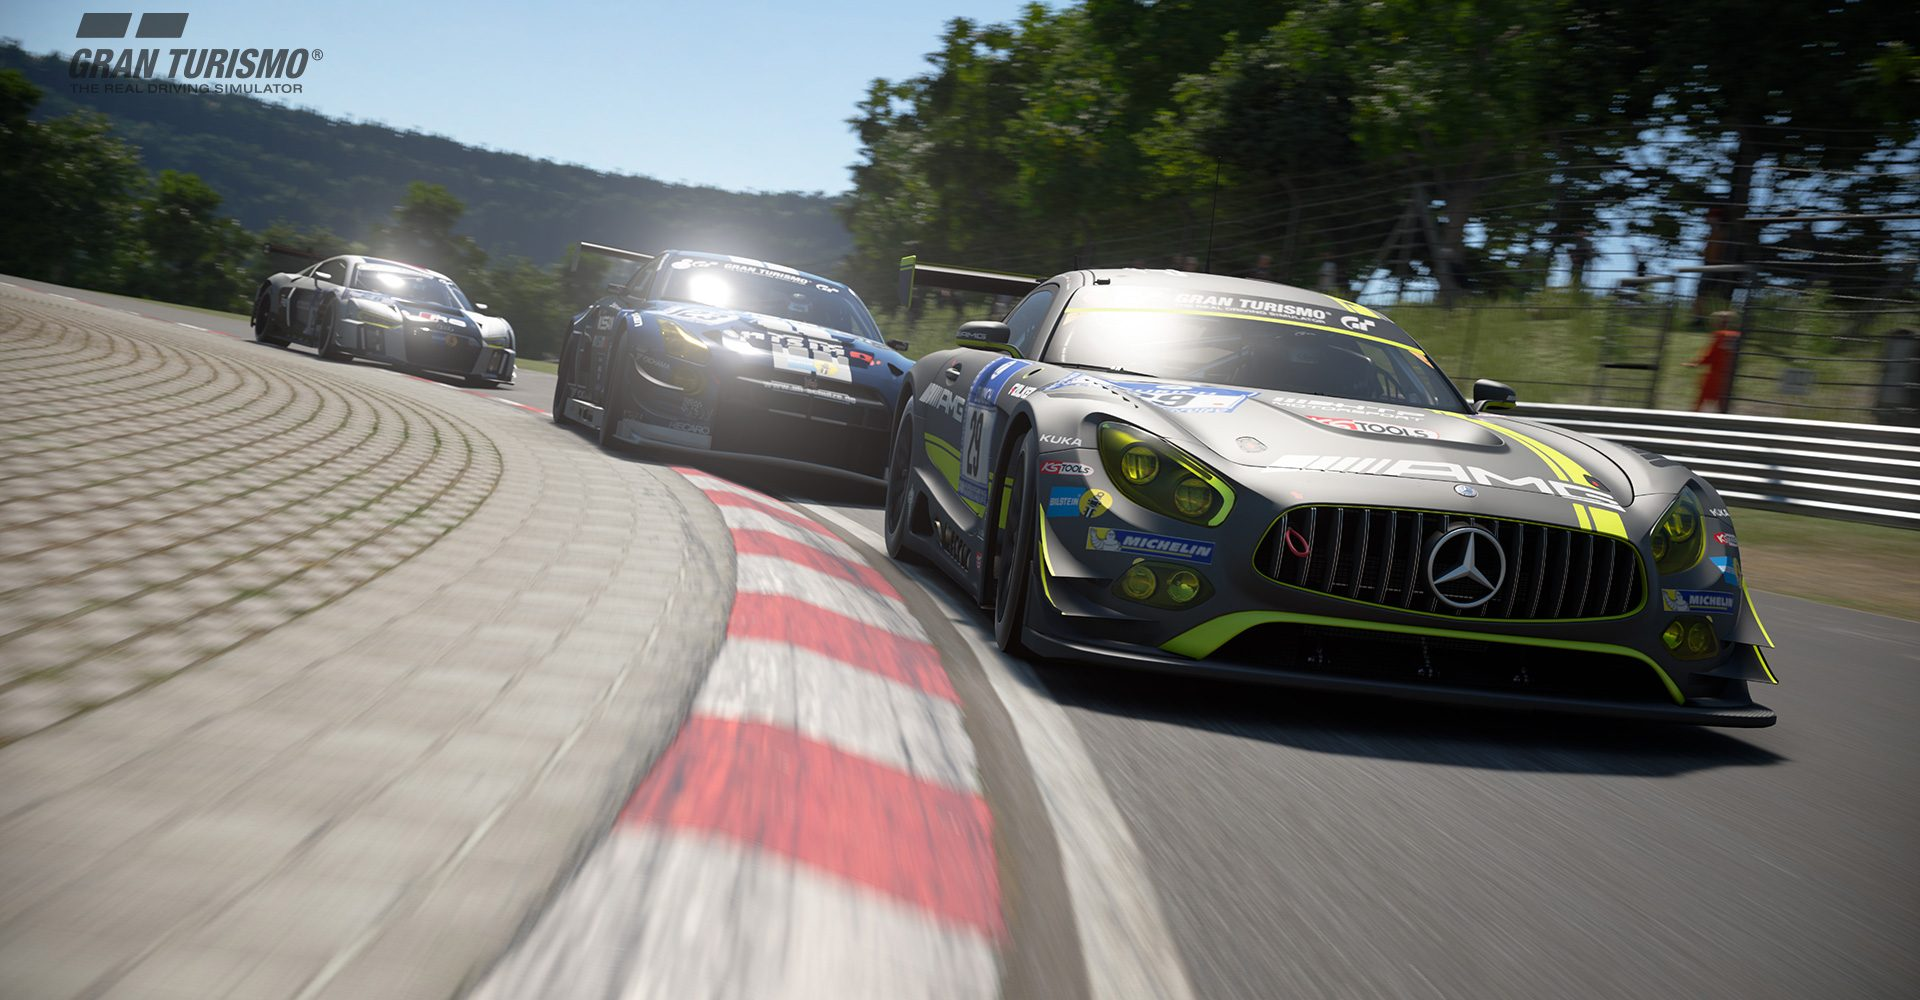 Gran Turismo Sport: Lots of potential but lacking substance